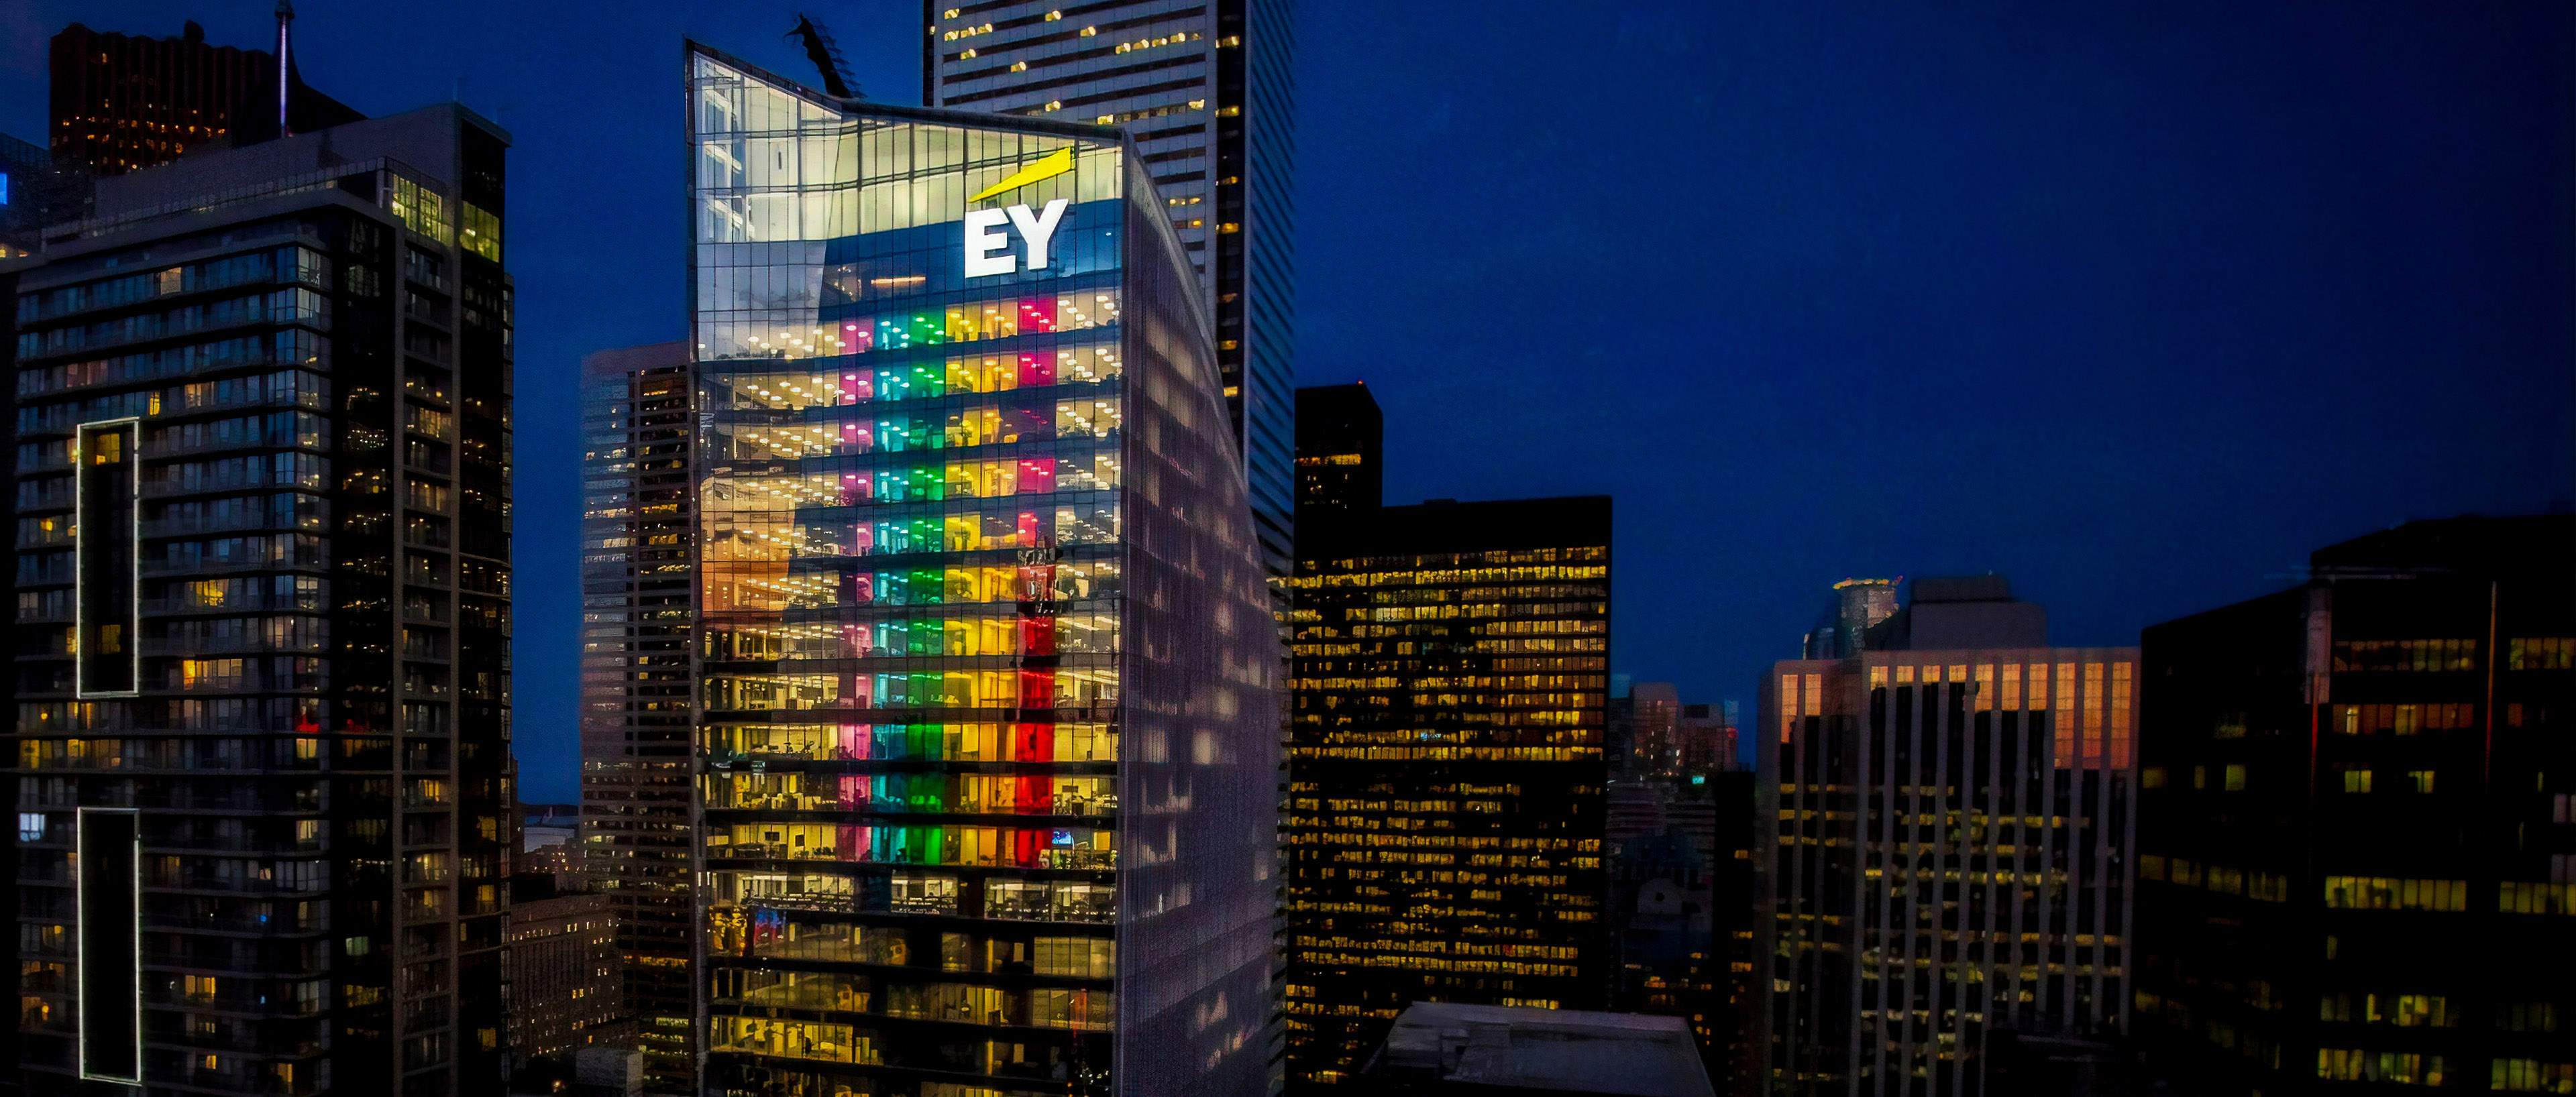 EY building pride rainbow flag lights